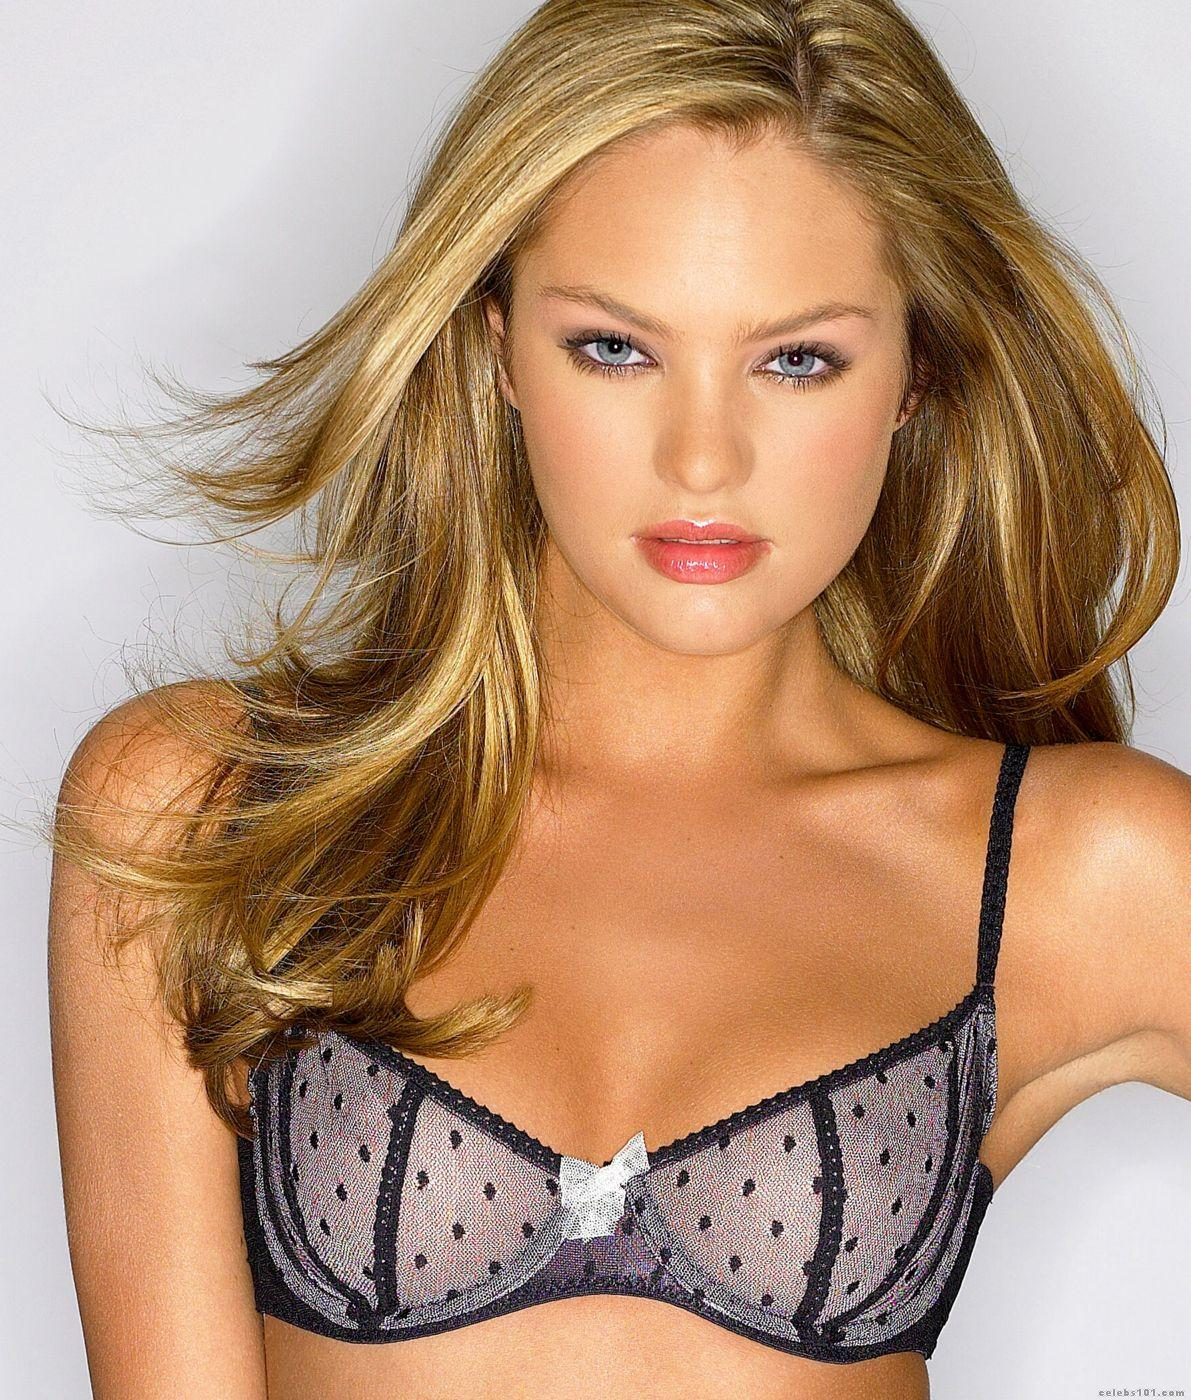 World's All Sexiest Candice's Bikini Images